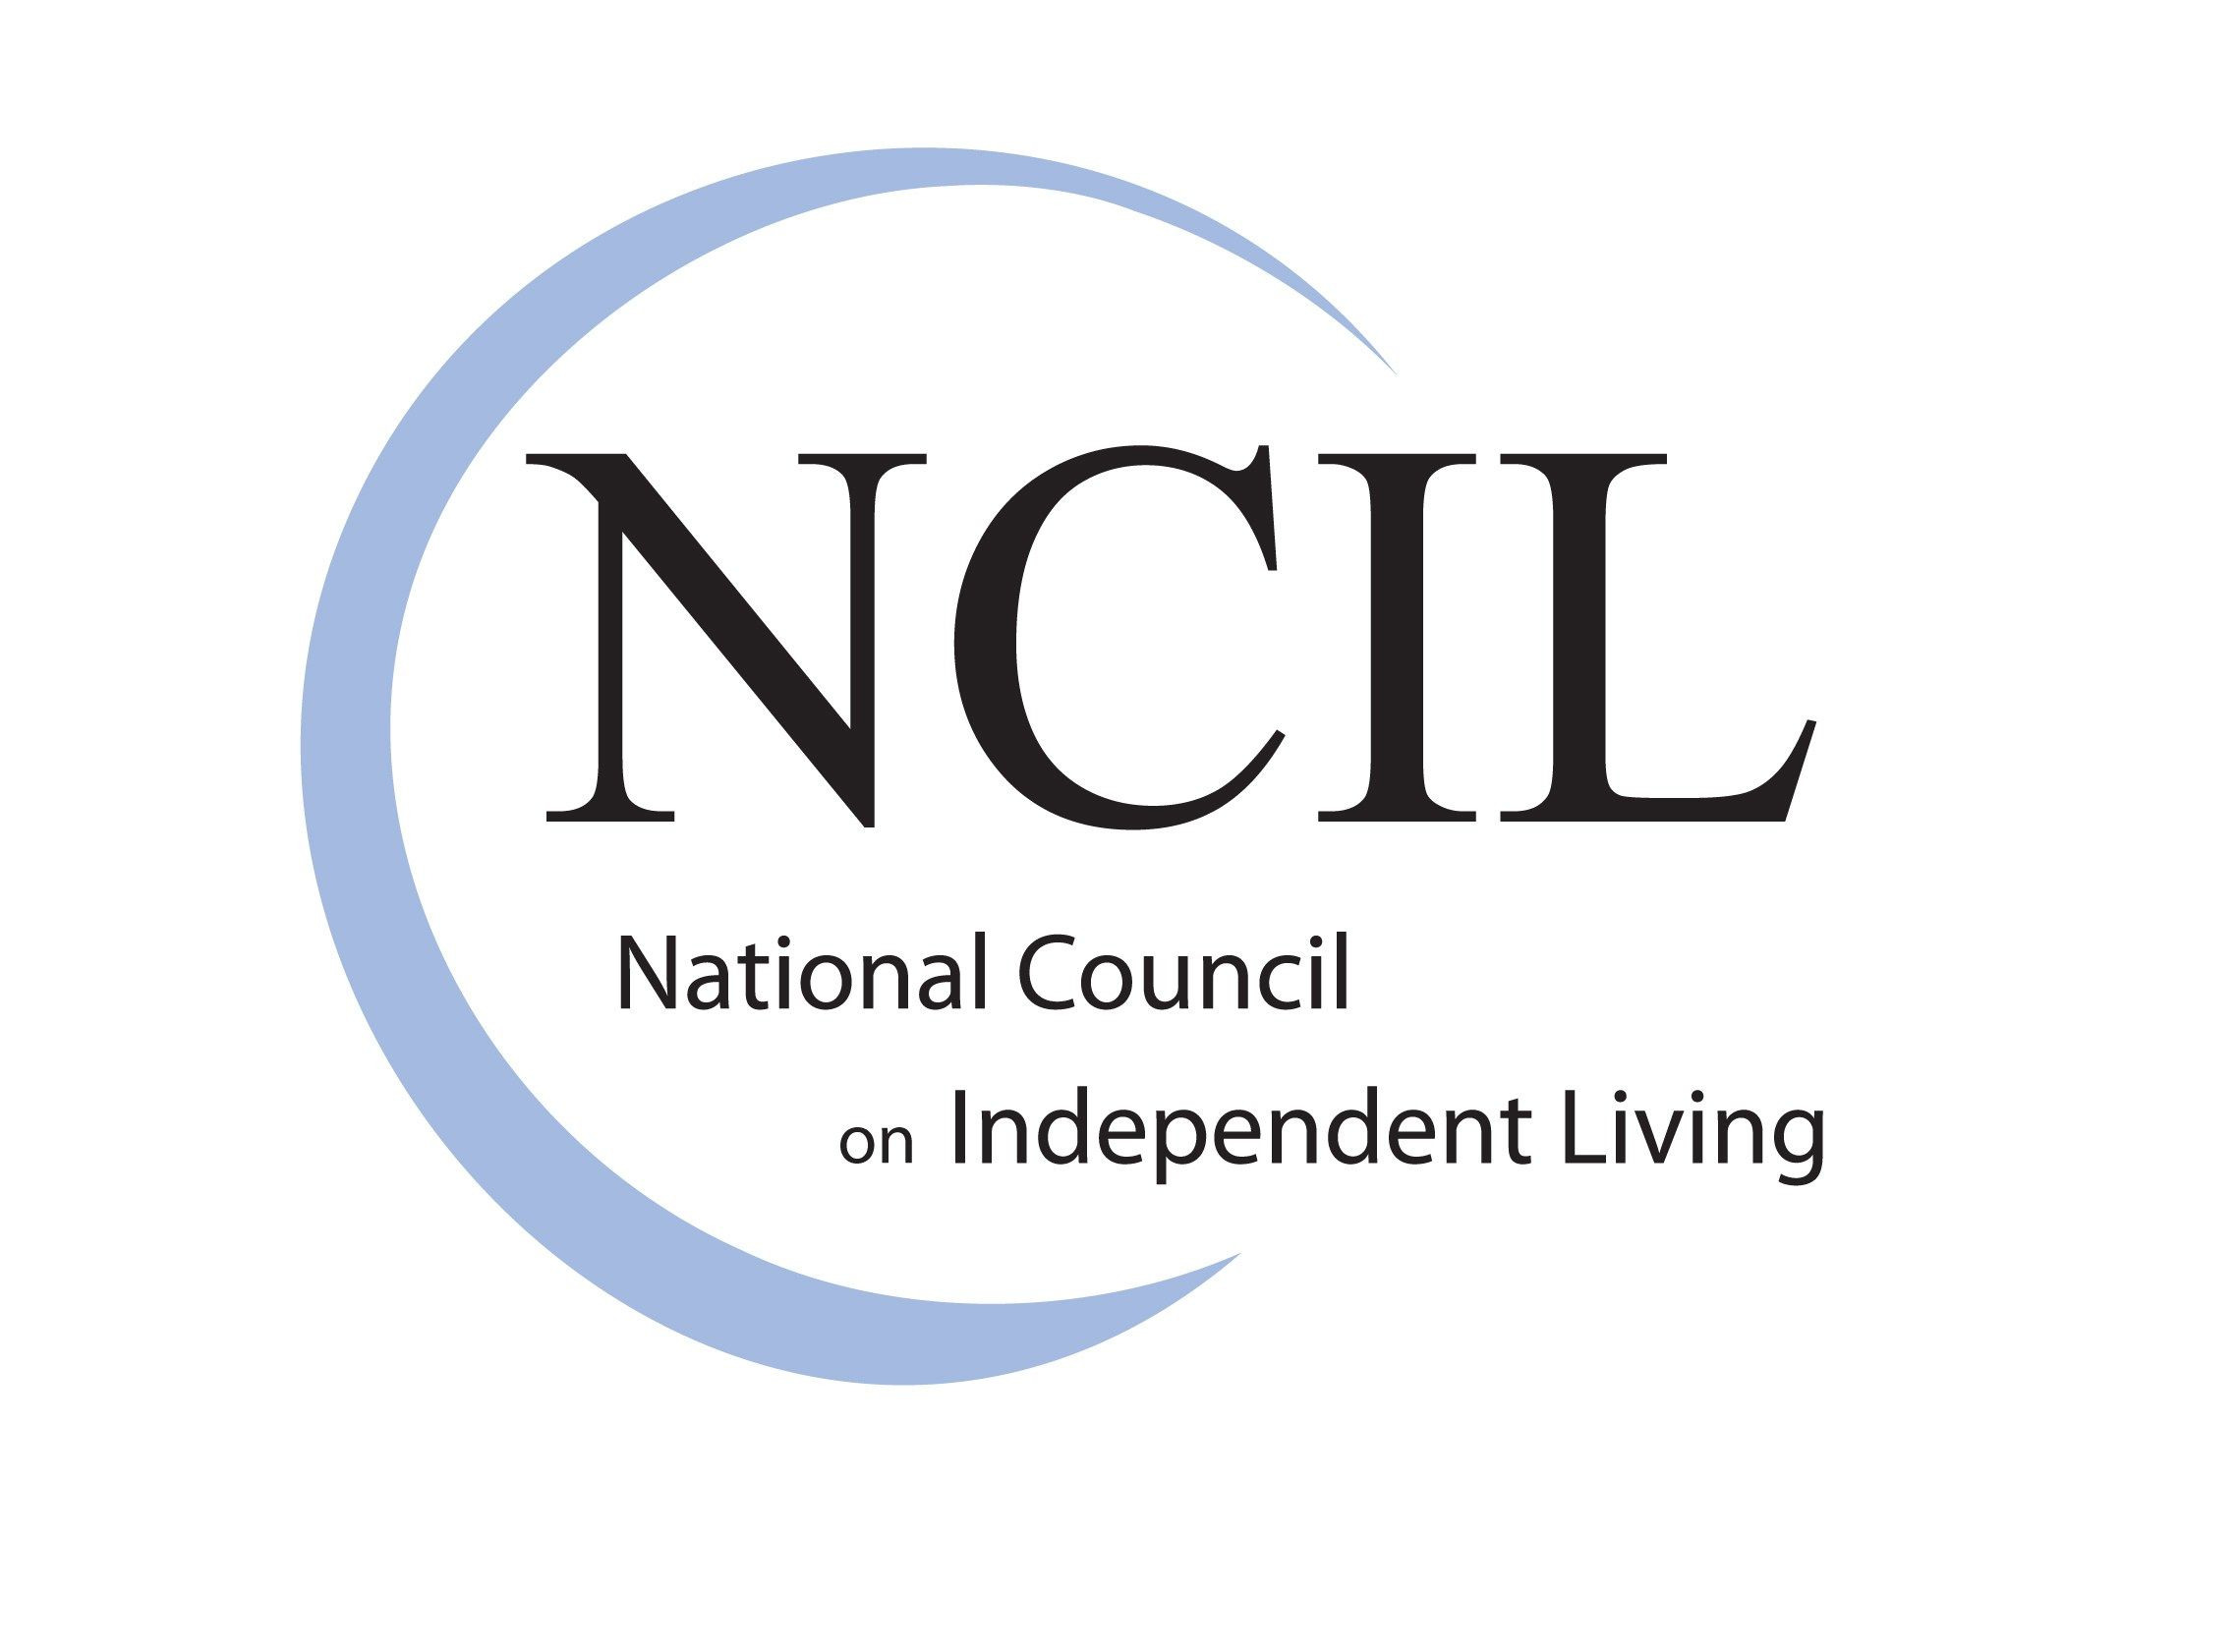 National Council on Independent Living